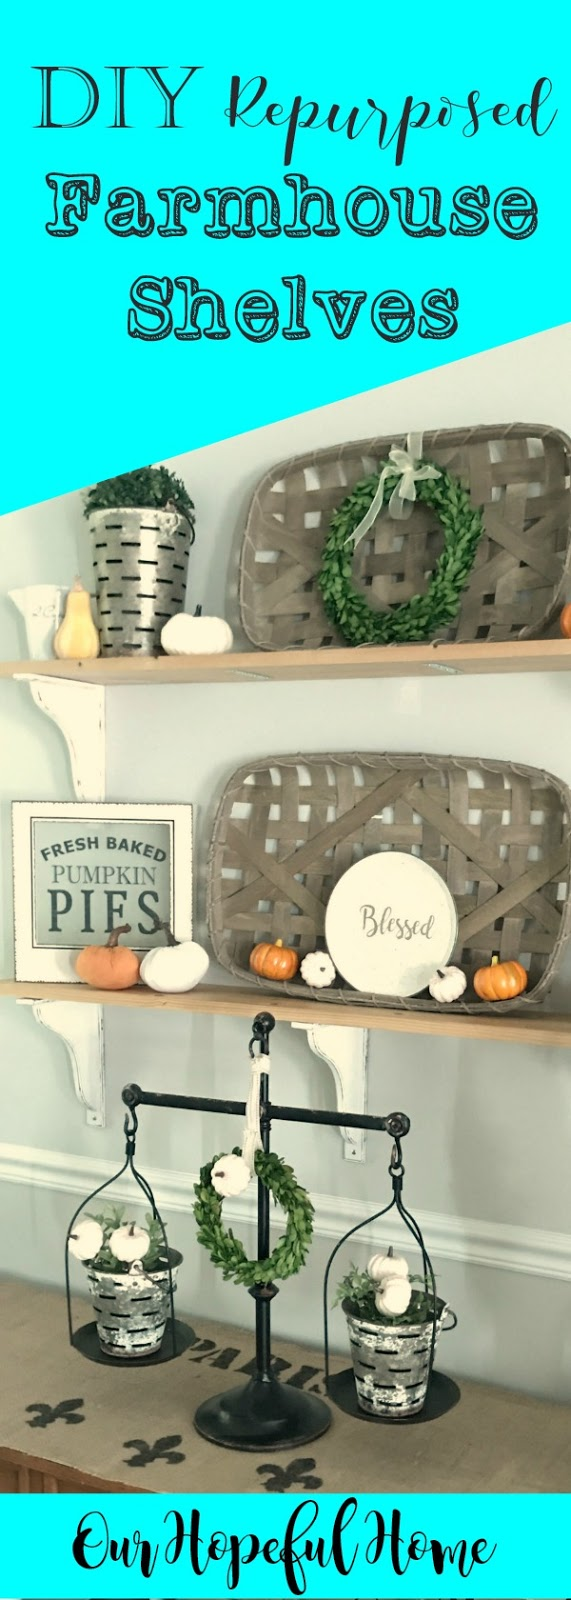 fall decor tobacco basket boxwood wreath velvet pumpkins pie sign shelves white corbels vintage scales